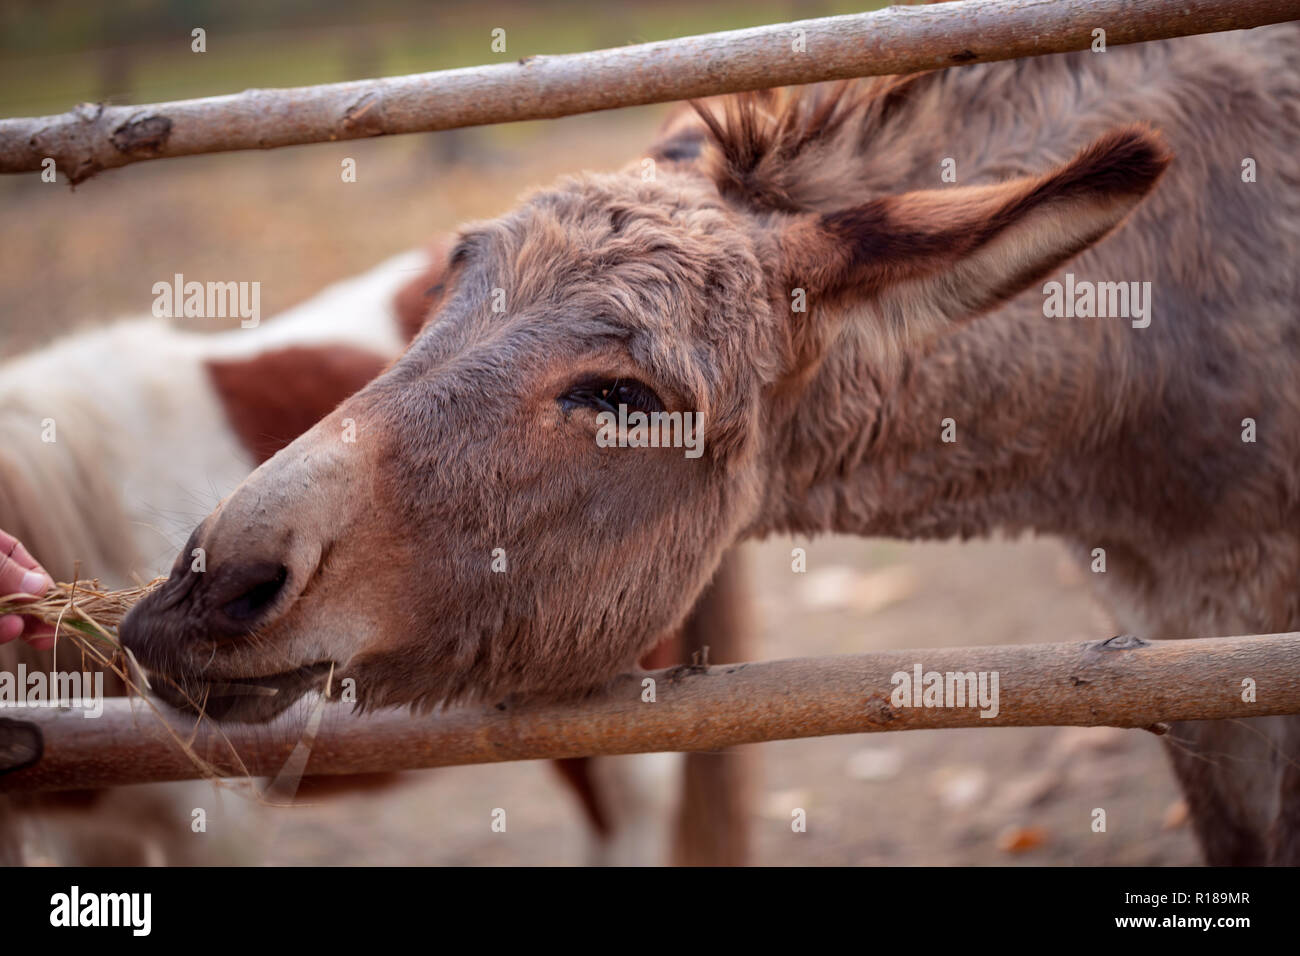 Young man feeds a beautiful donkey close up - Stock Image